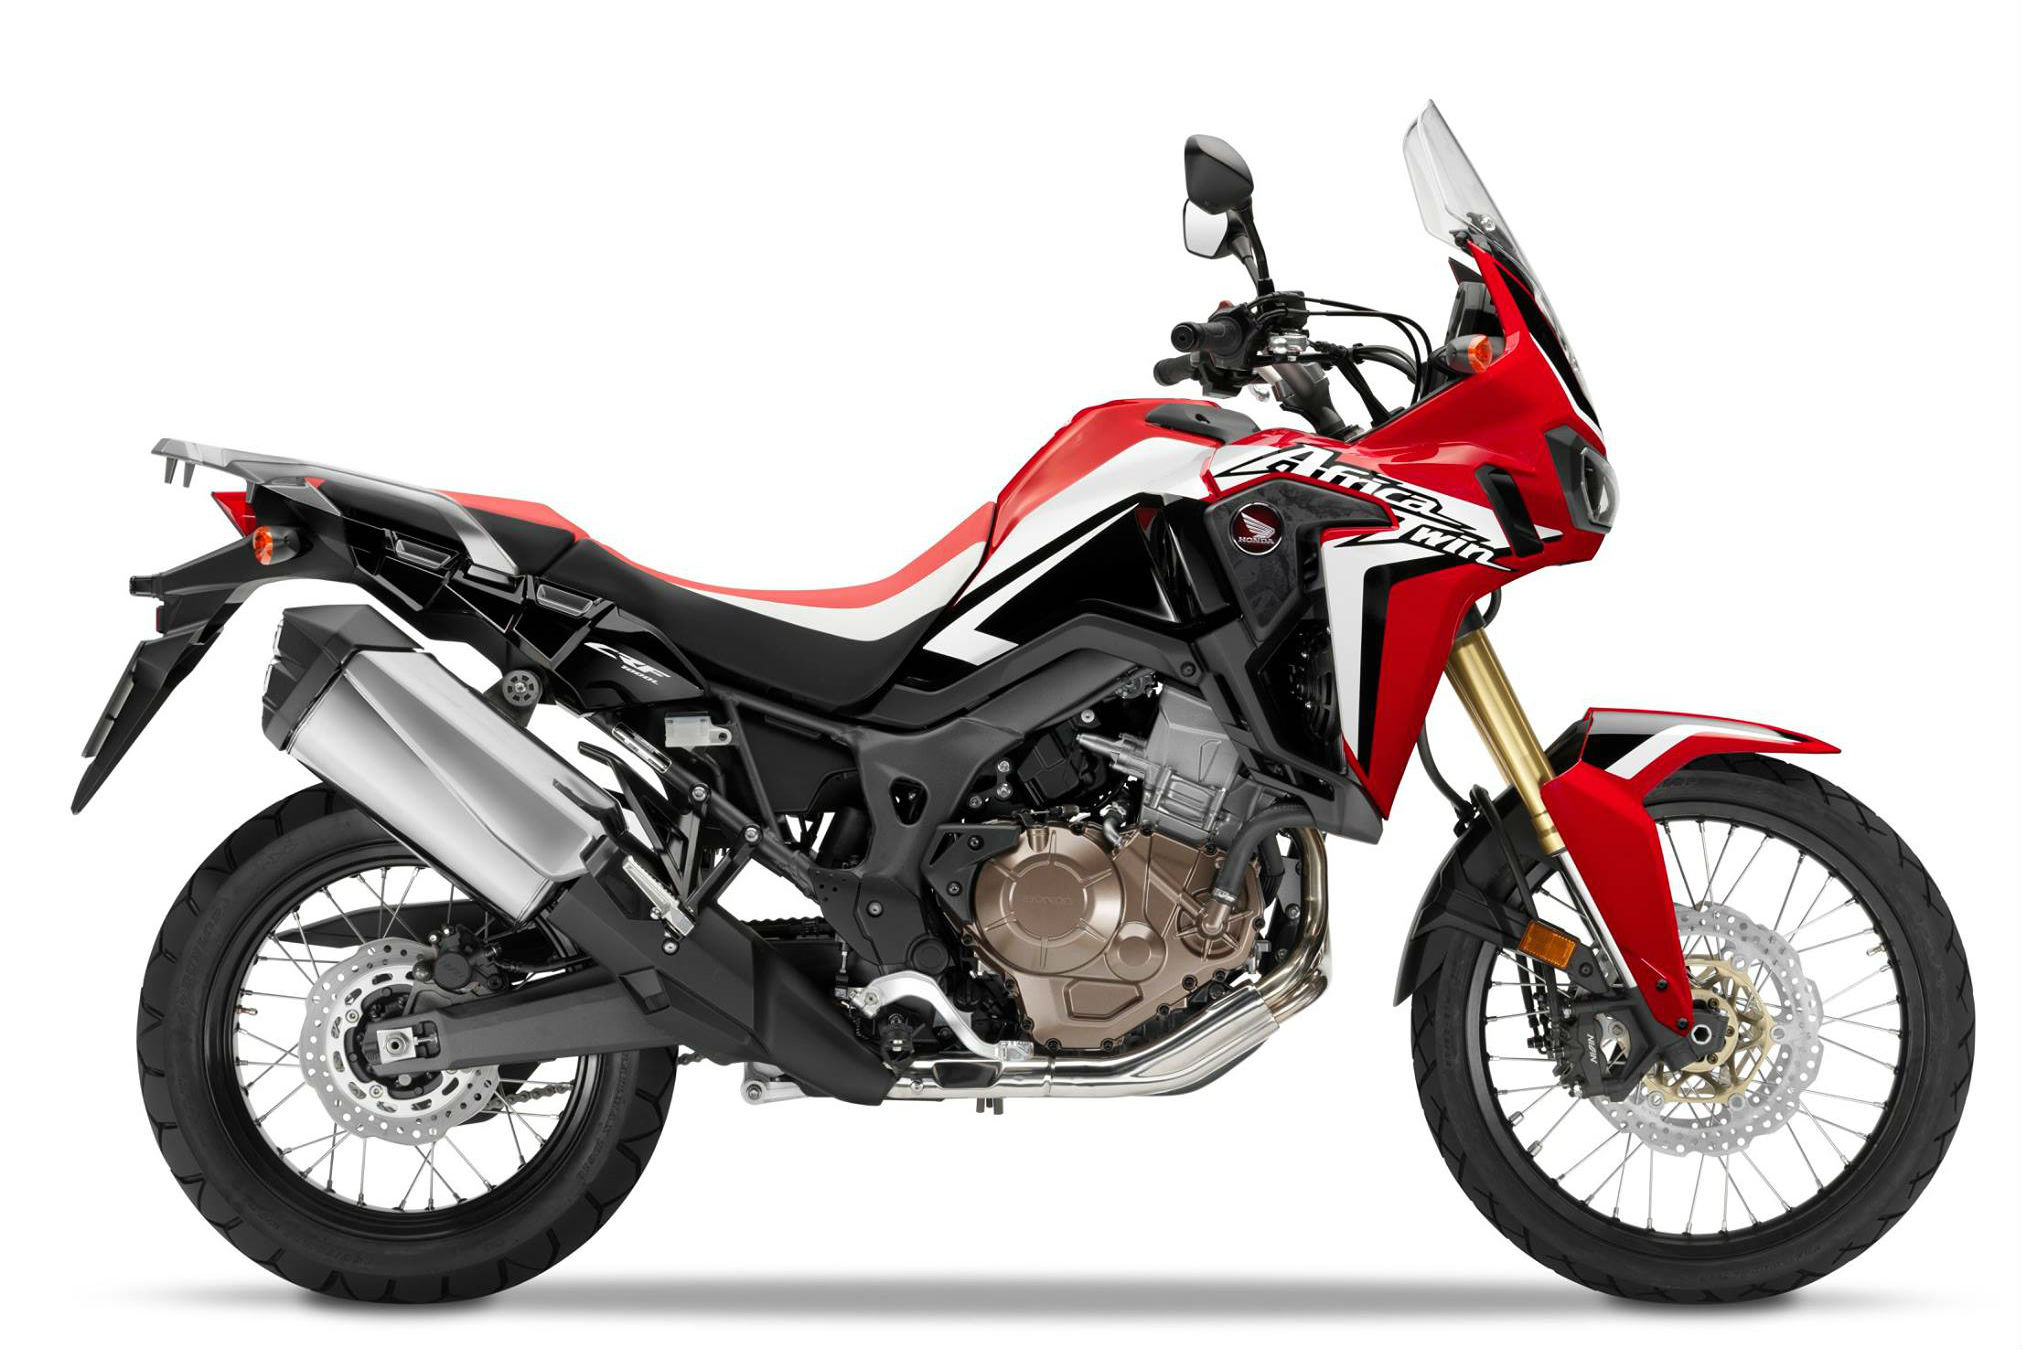 Honda Africa Twin full specs and hi-res picture leaked